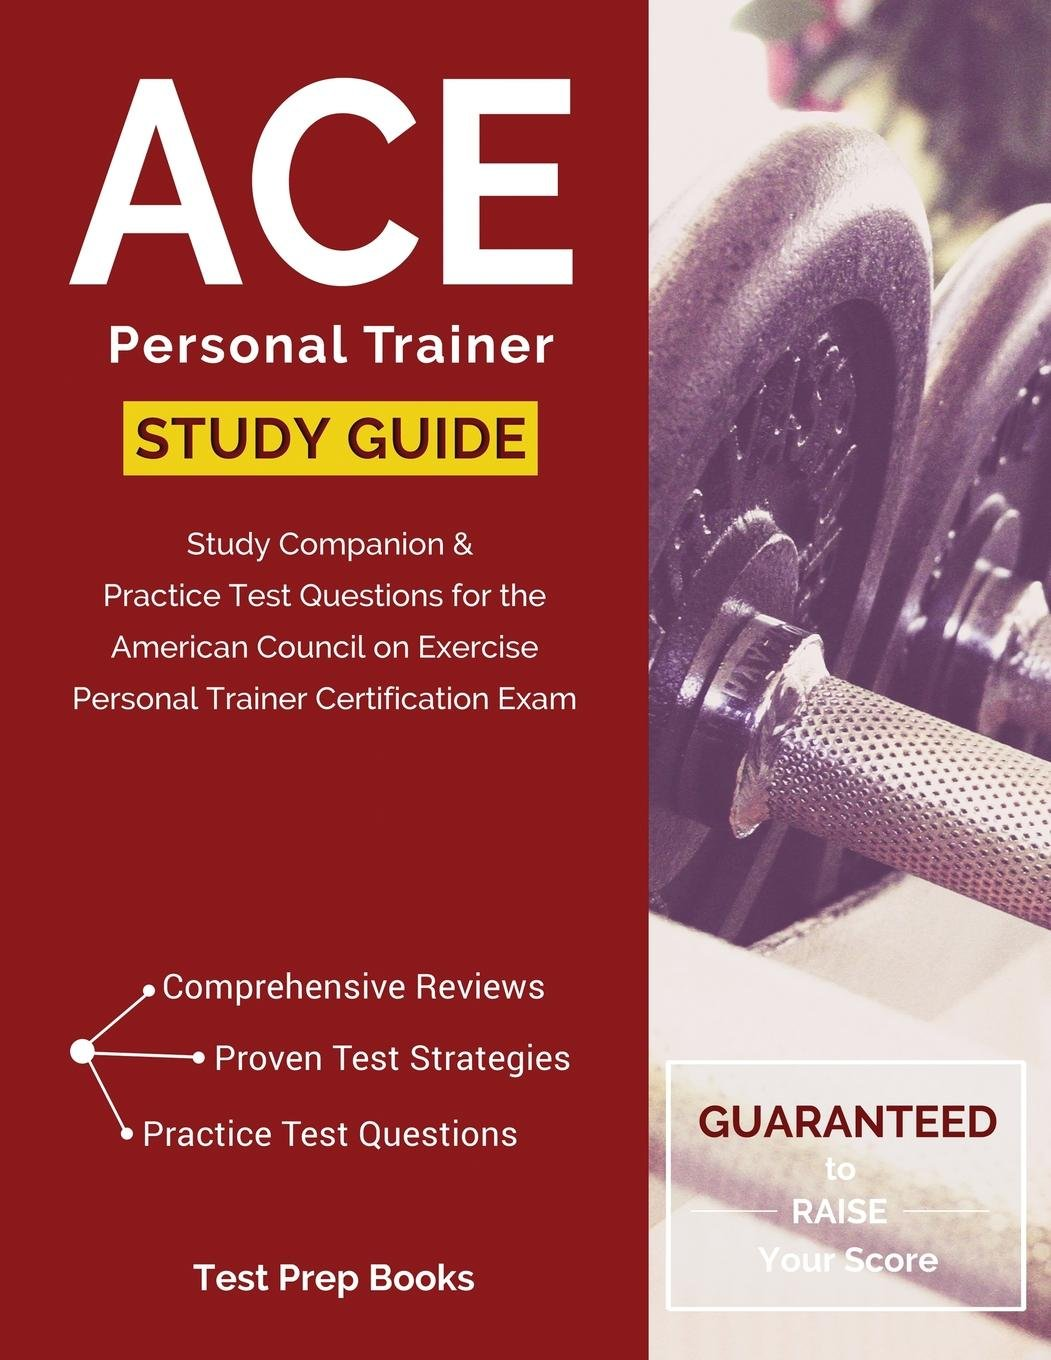 Buy Ace Personal Trainer Manual Study Guide Study Companion